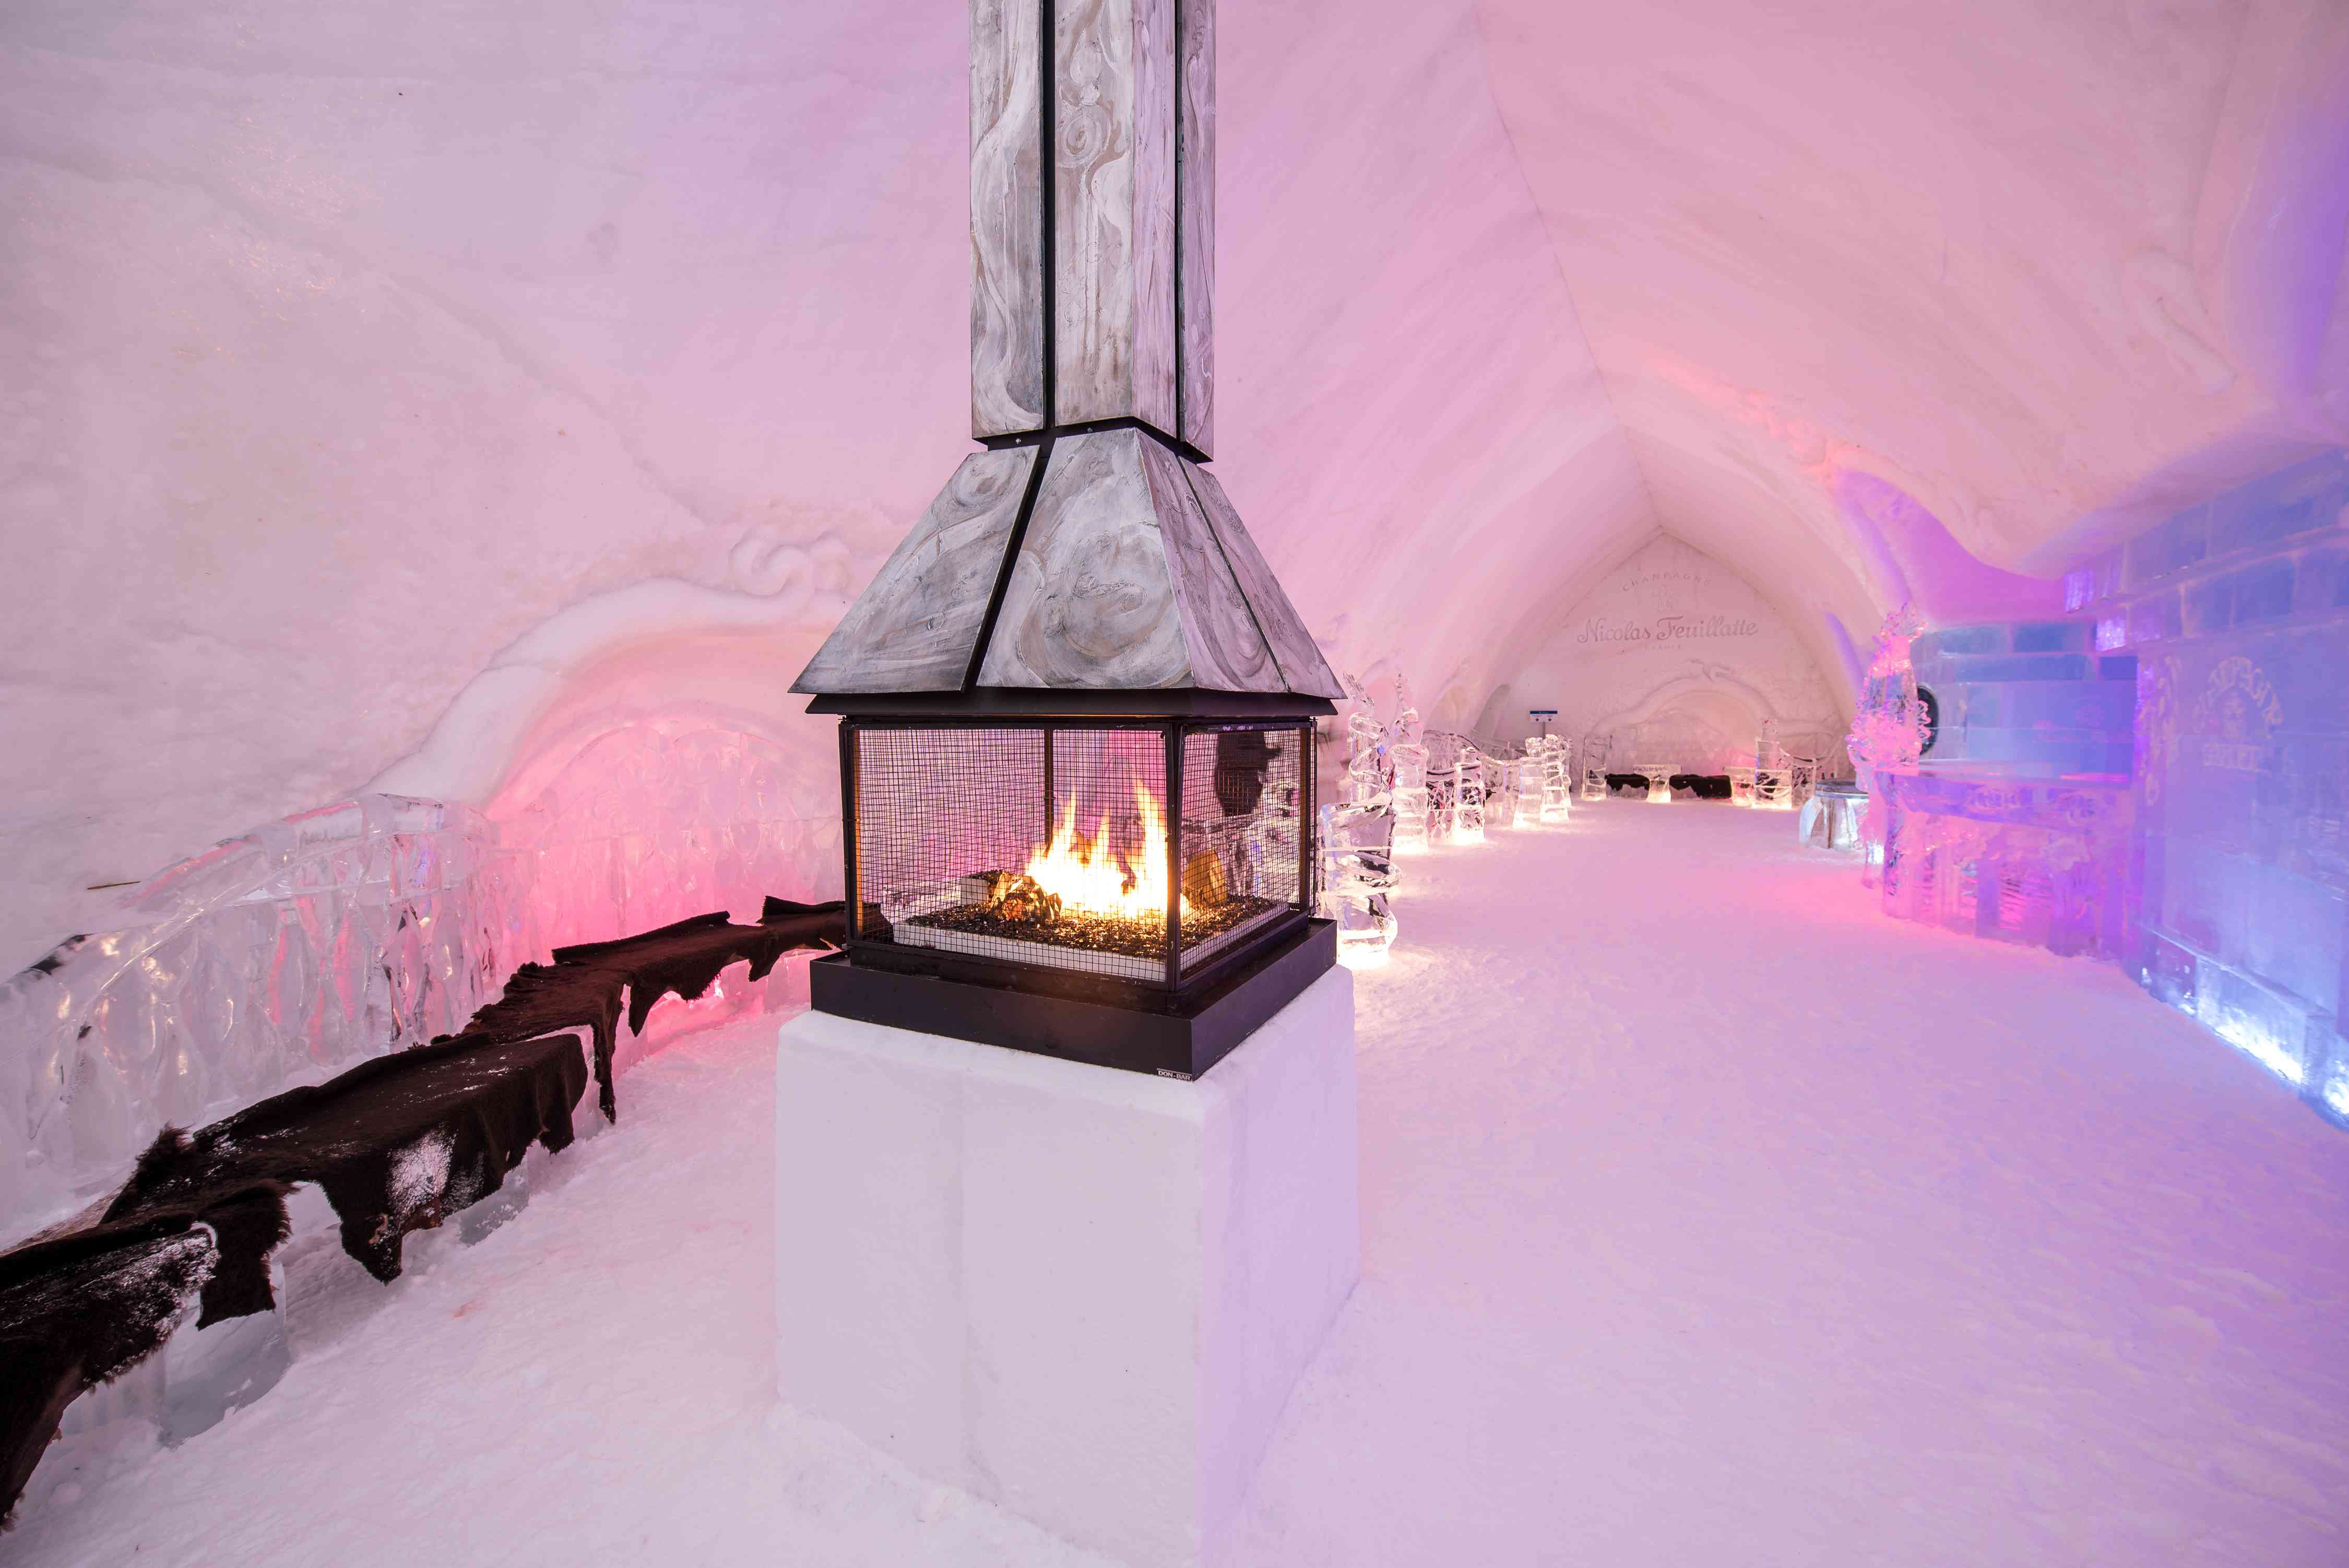 interior of the famous Hôtel de Glace with a fire place and snow walls